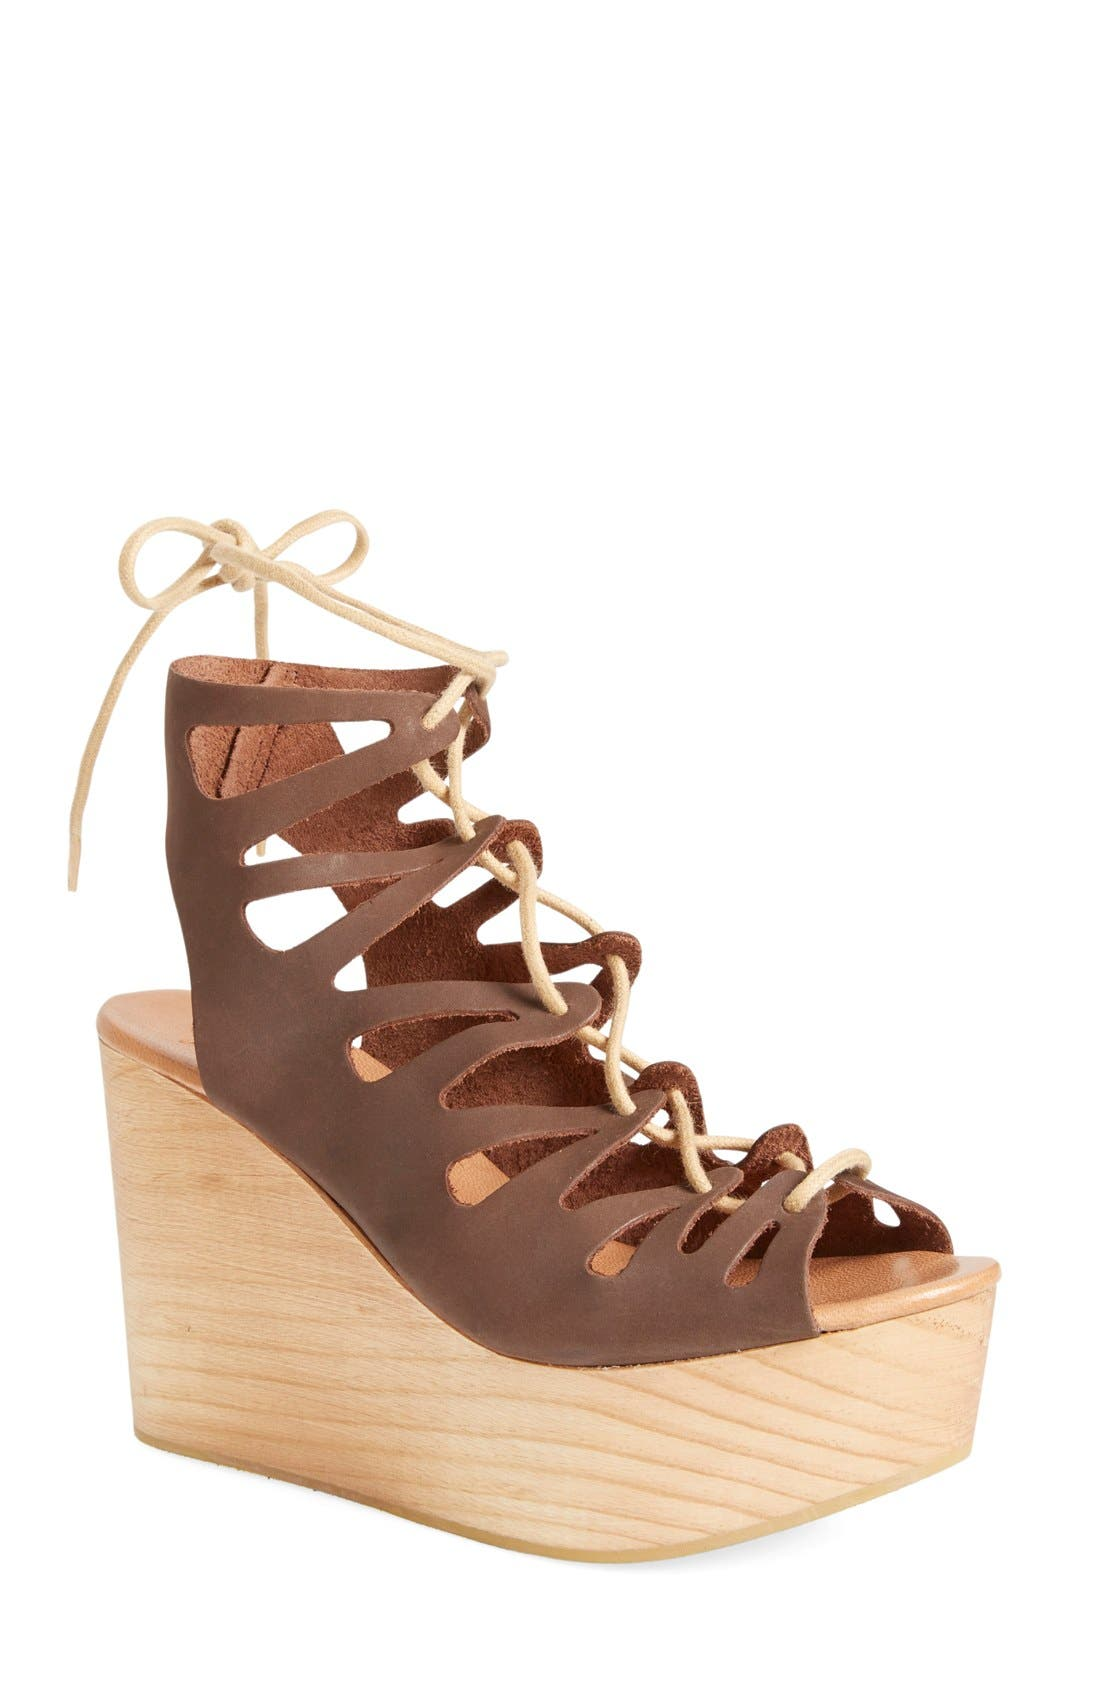 Alternate Image 1 Selected - Musse & Cloud 'Oneka' Lace-Up Sandal (Women)